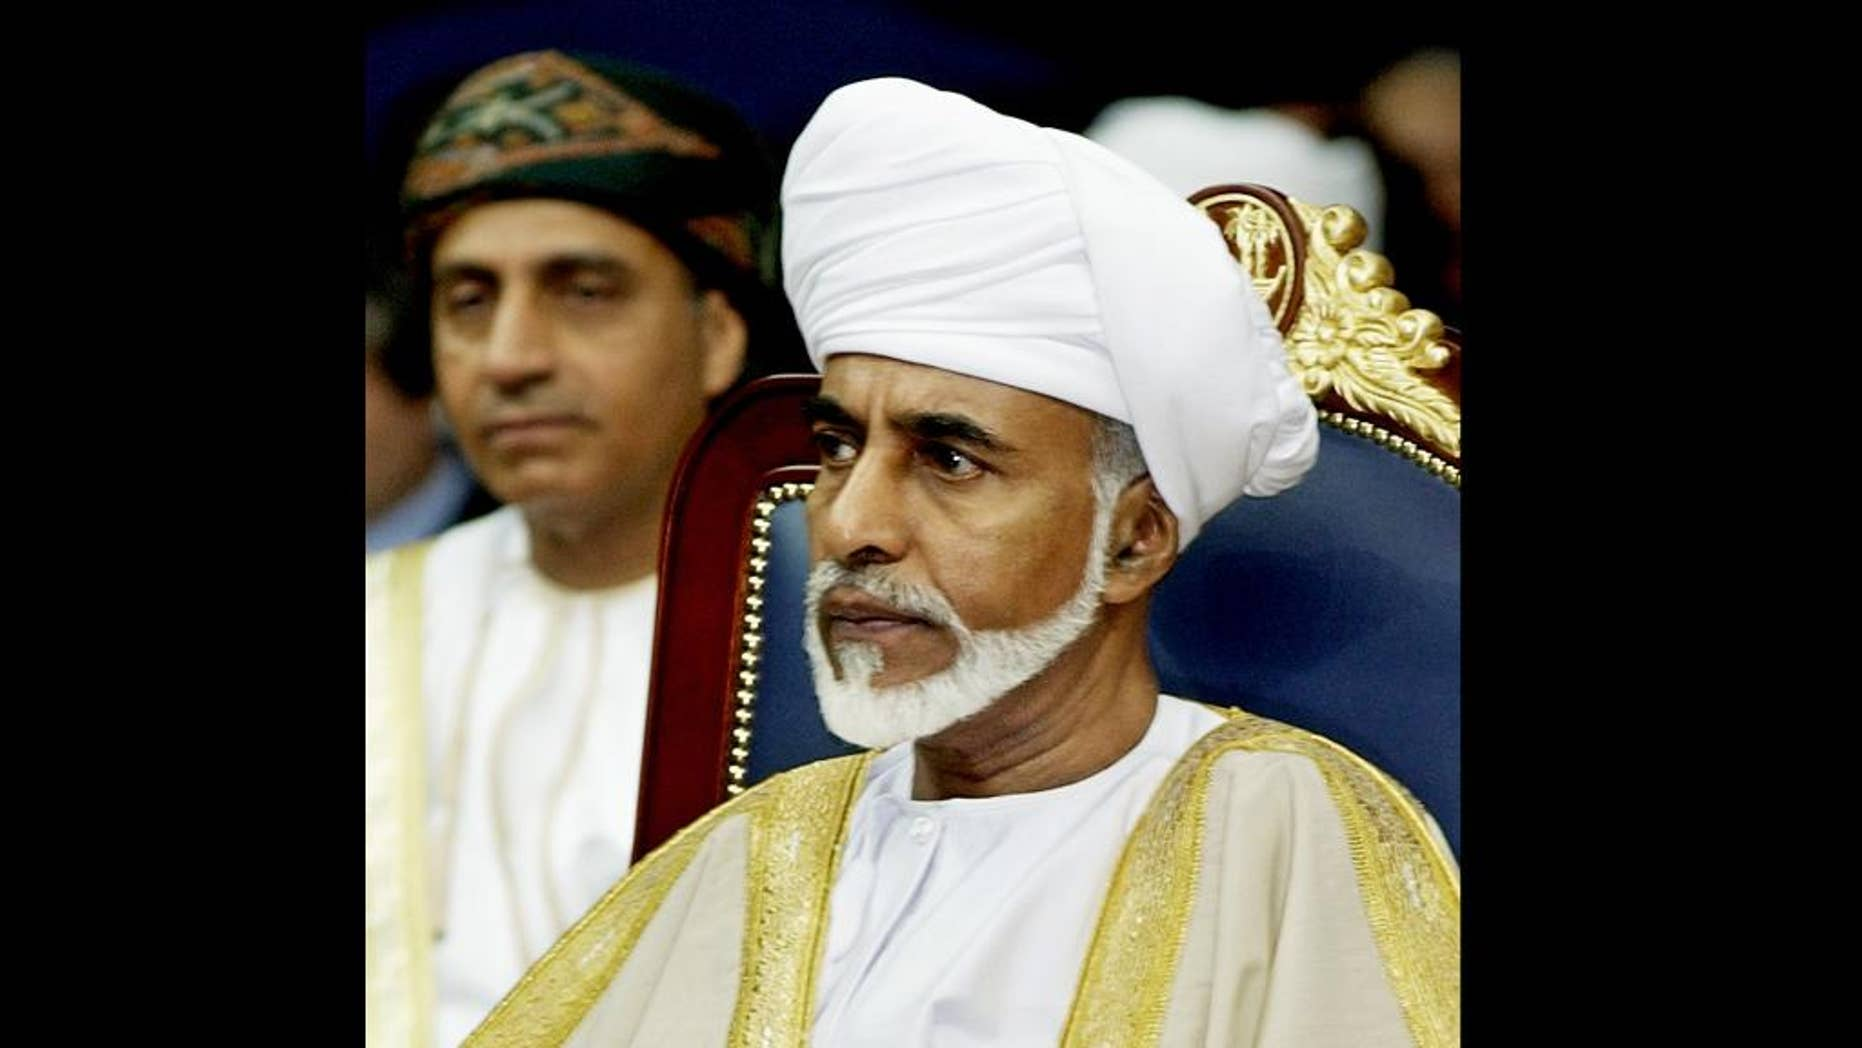 FILE - In this Saturday, Dec. 21, 2002 file photo, Sultan Qaboos bin Said of Oman attends the 23rd session of the Gulf Cooperation Council Summit in Doha, Qatar. Oman's state TV has aired images of the country's ailing 74-year-old ruler returning after several months of treatment in Germany. (AP Photo/Kevork Djansezian, File)